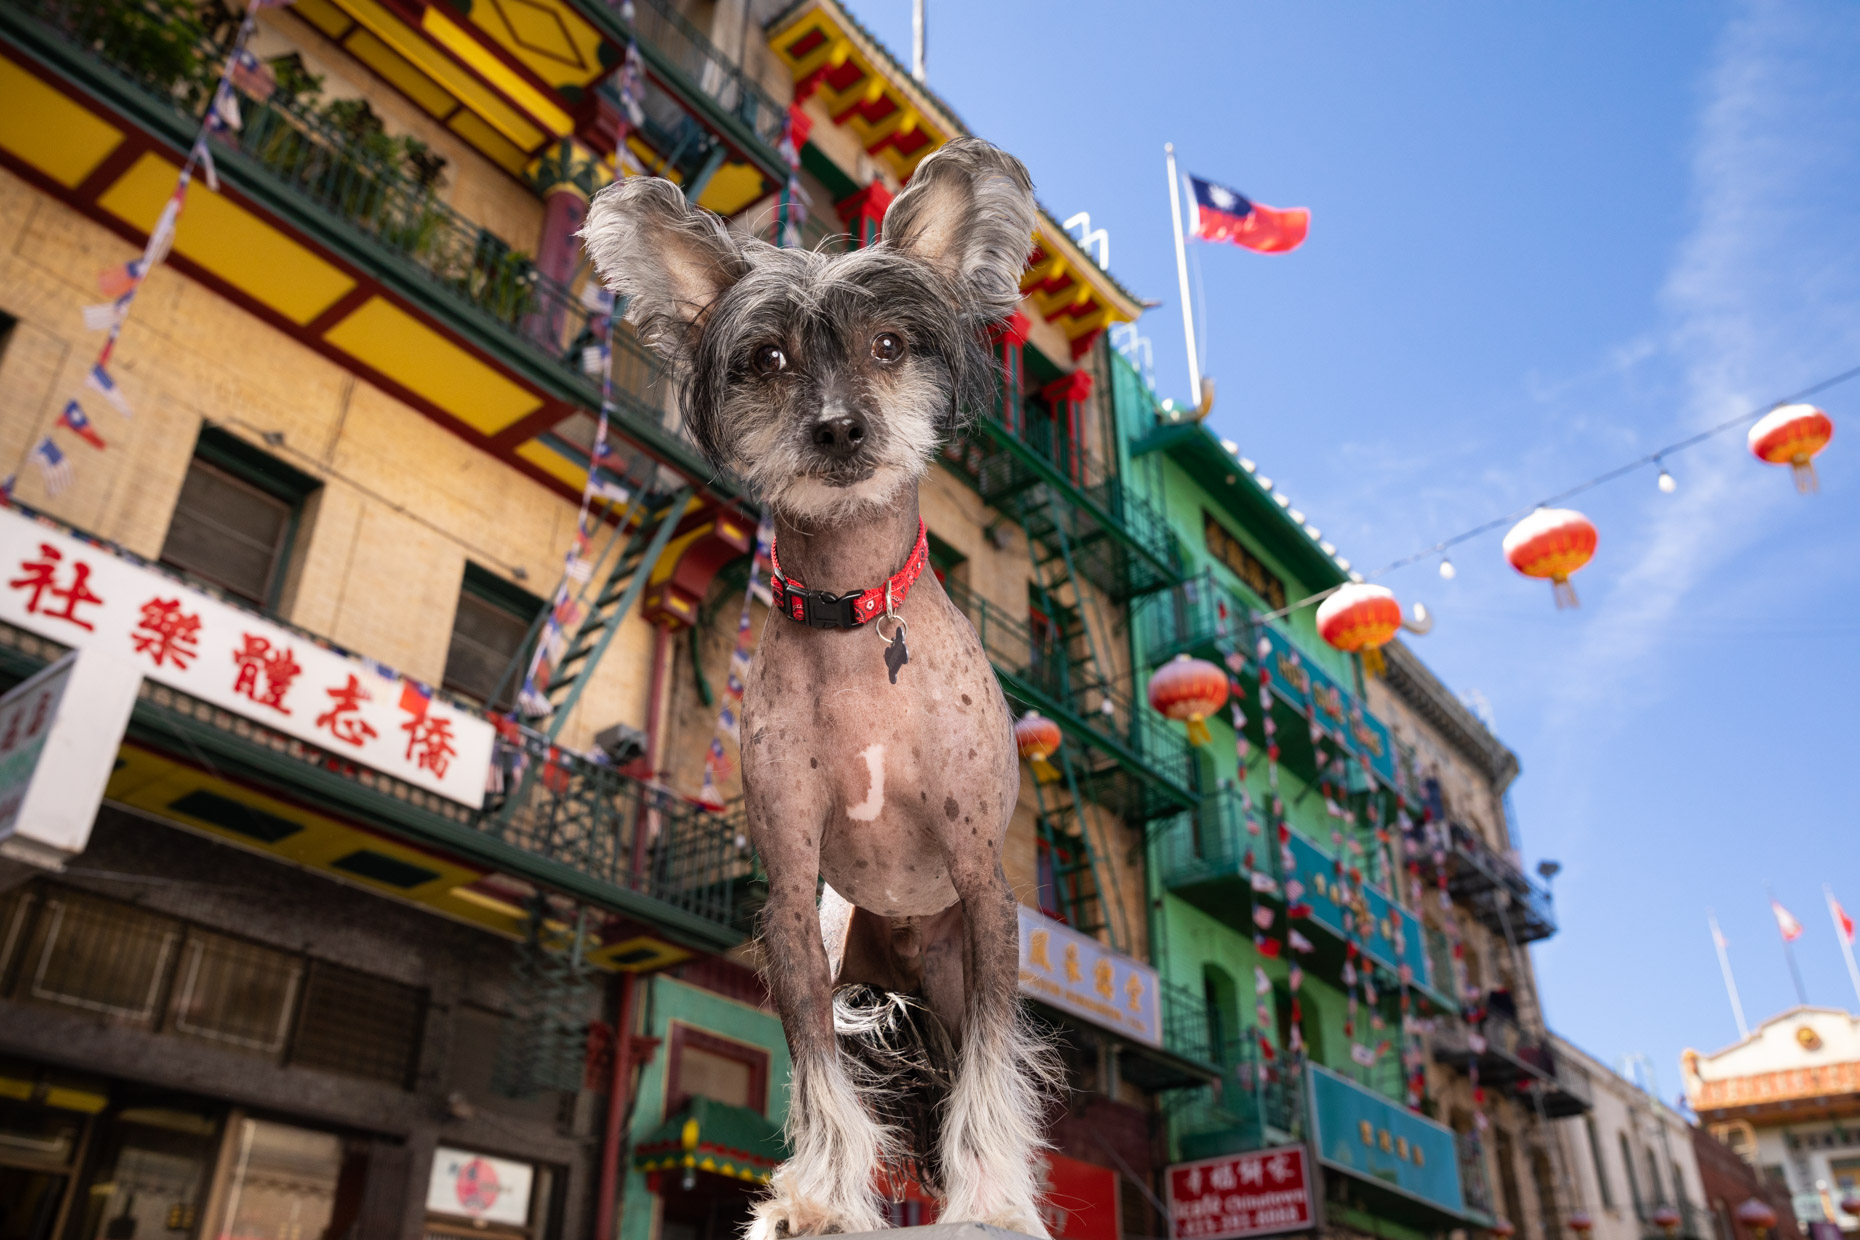 Dog Photography | Chinese Crested Dog in Chinatown by Mark Rogers